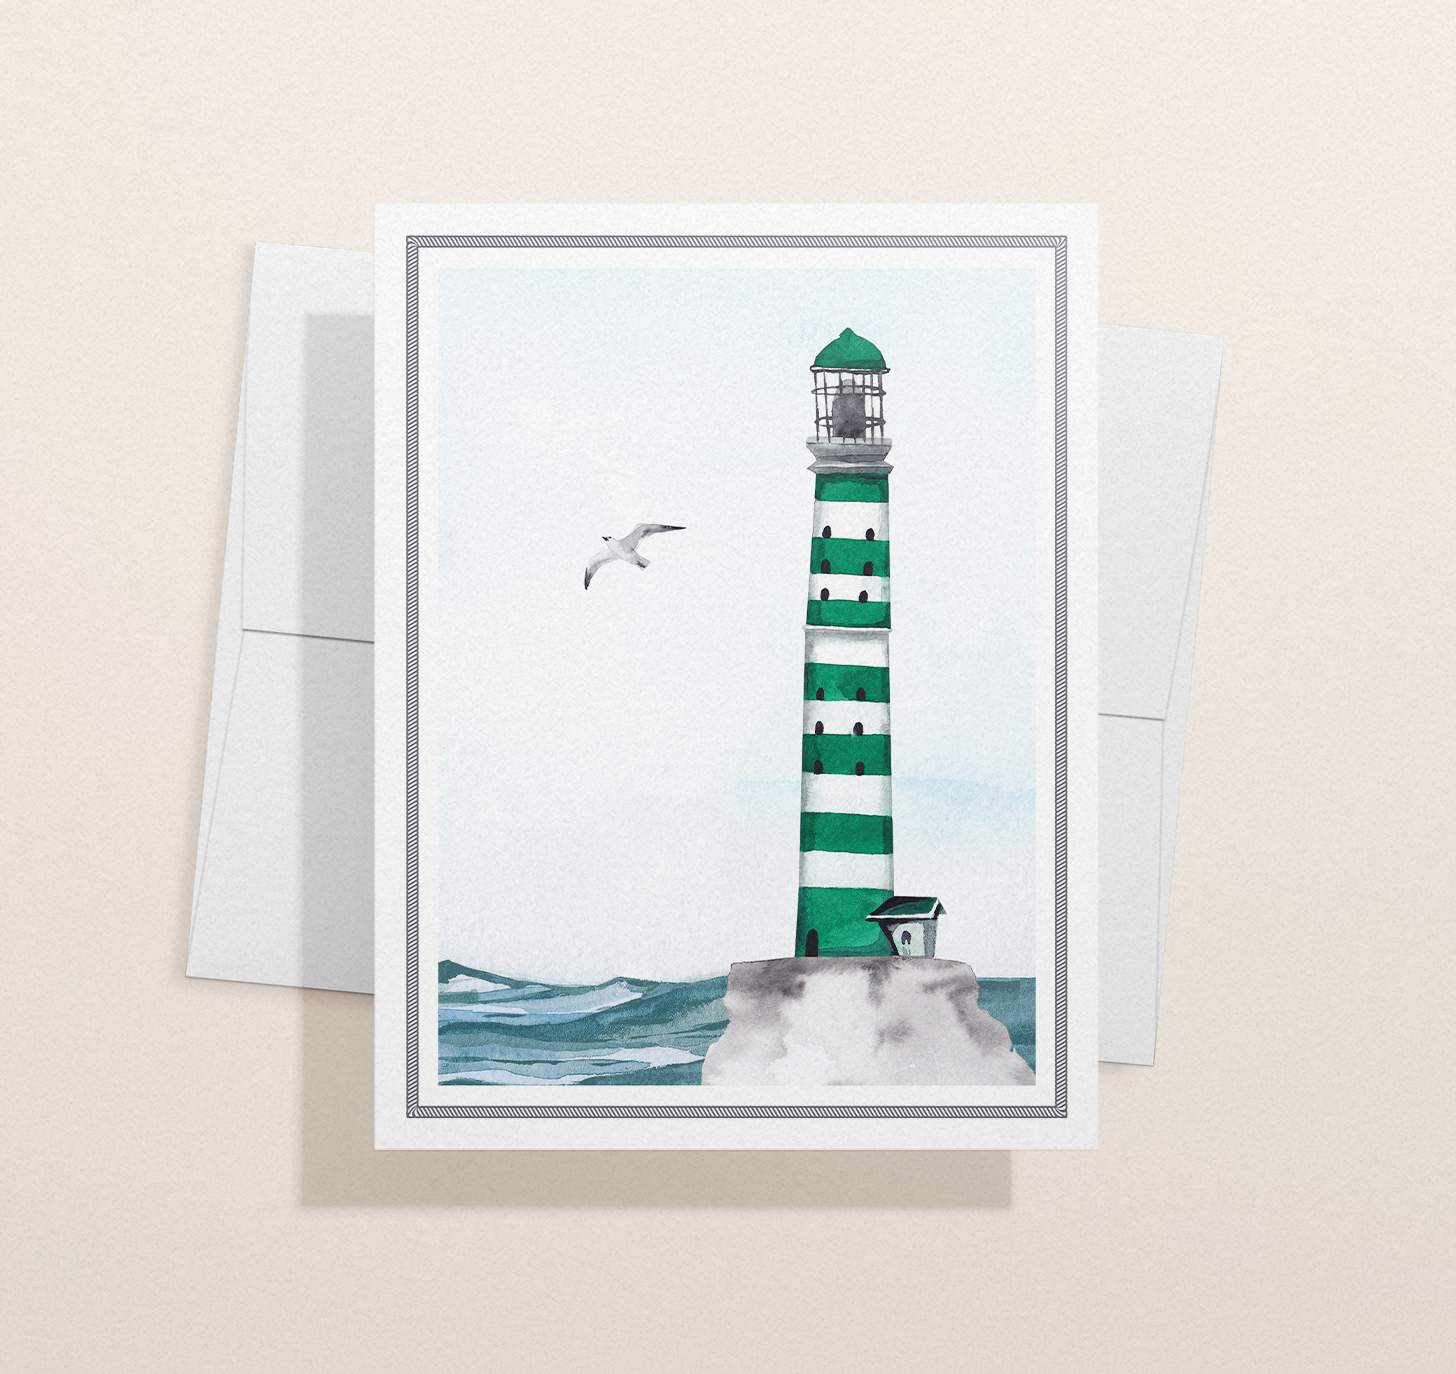 Green striped lighthouse design with ocean with envelope